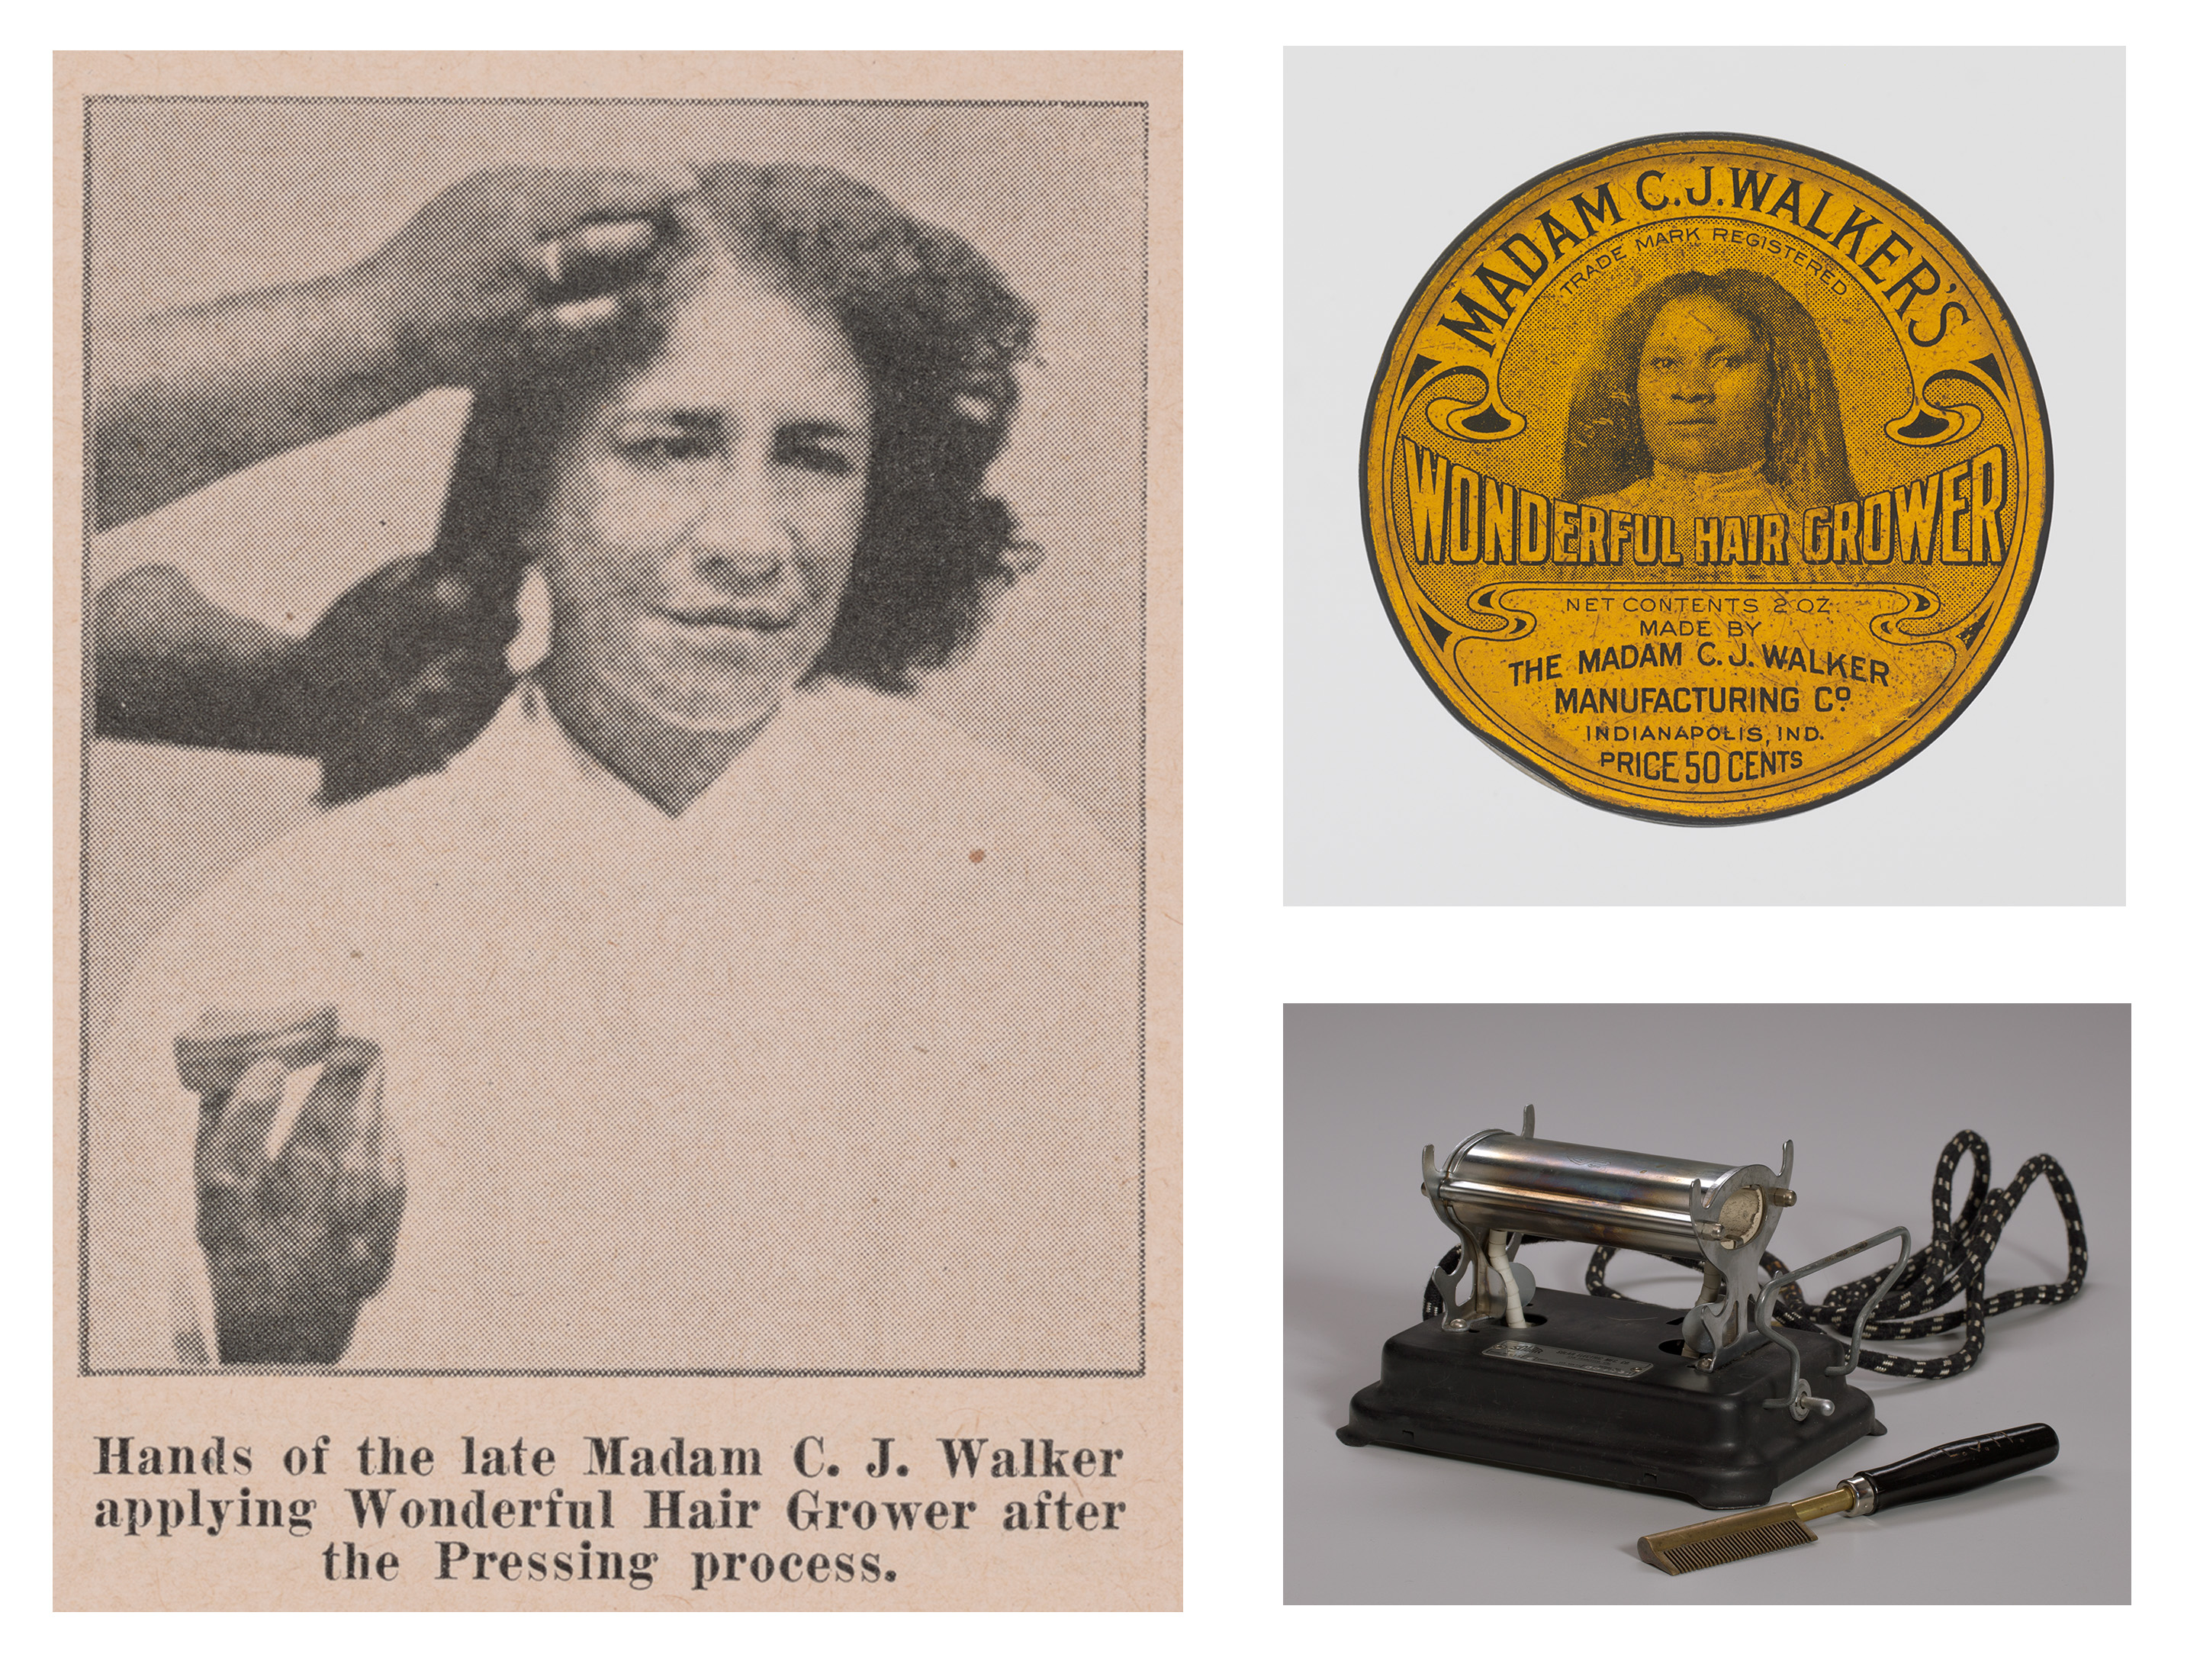 """A page from the Madam C.J. Walker Beauty School textbook, Madam C.J. Walker's """"Wonderful Hair Grower"""" and a 1920s electrical hot comb heater and comb. (Gift of A'Lelia Bundles/Madam Walker Family Archives; Gift from Dawn Simon Spears and Alvin Spears Sr; Gift of Linda Crichlow White in honor of her aunt, Edna Stevens McIntyre/Collection of the Smithsonian National Museum of African American History and Culture)"""